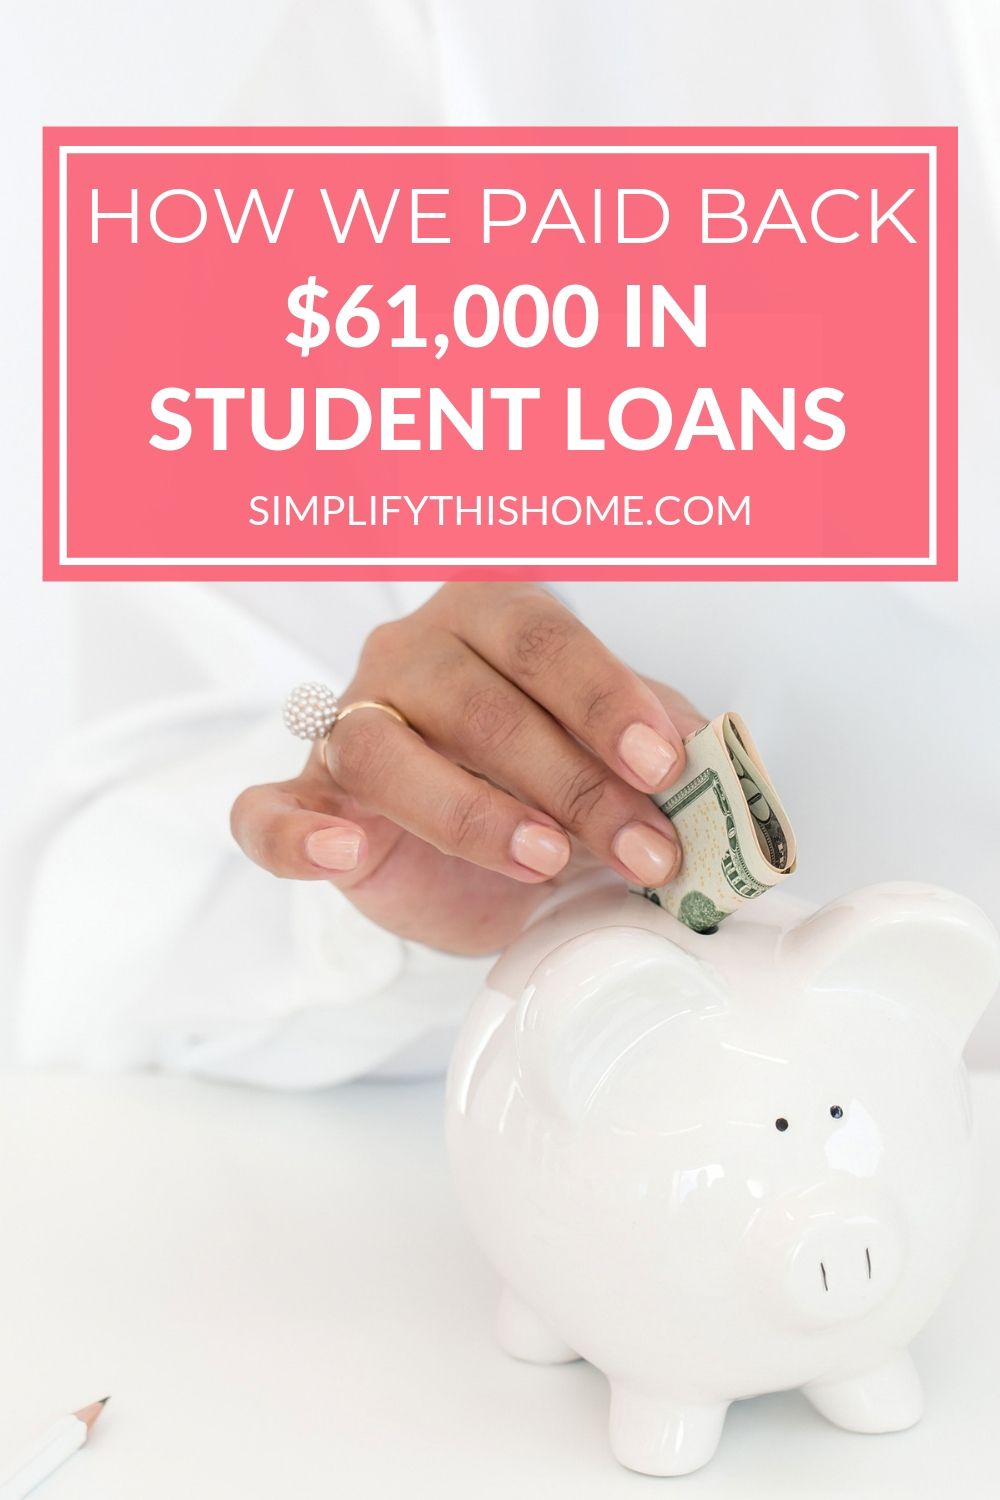 February 2019 student loan update 61345 paid back in 4